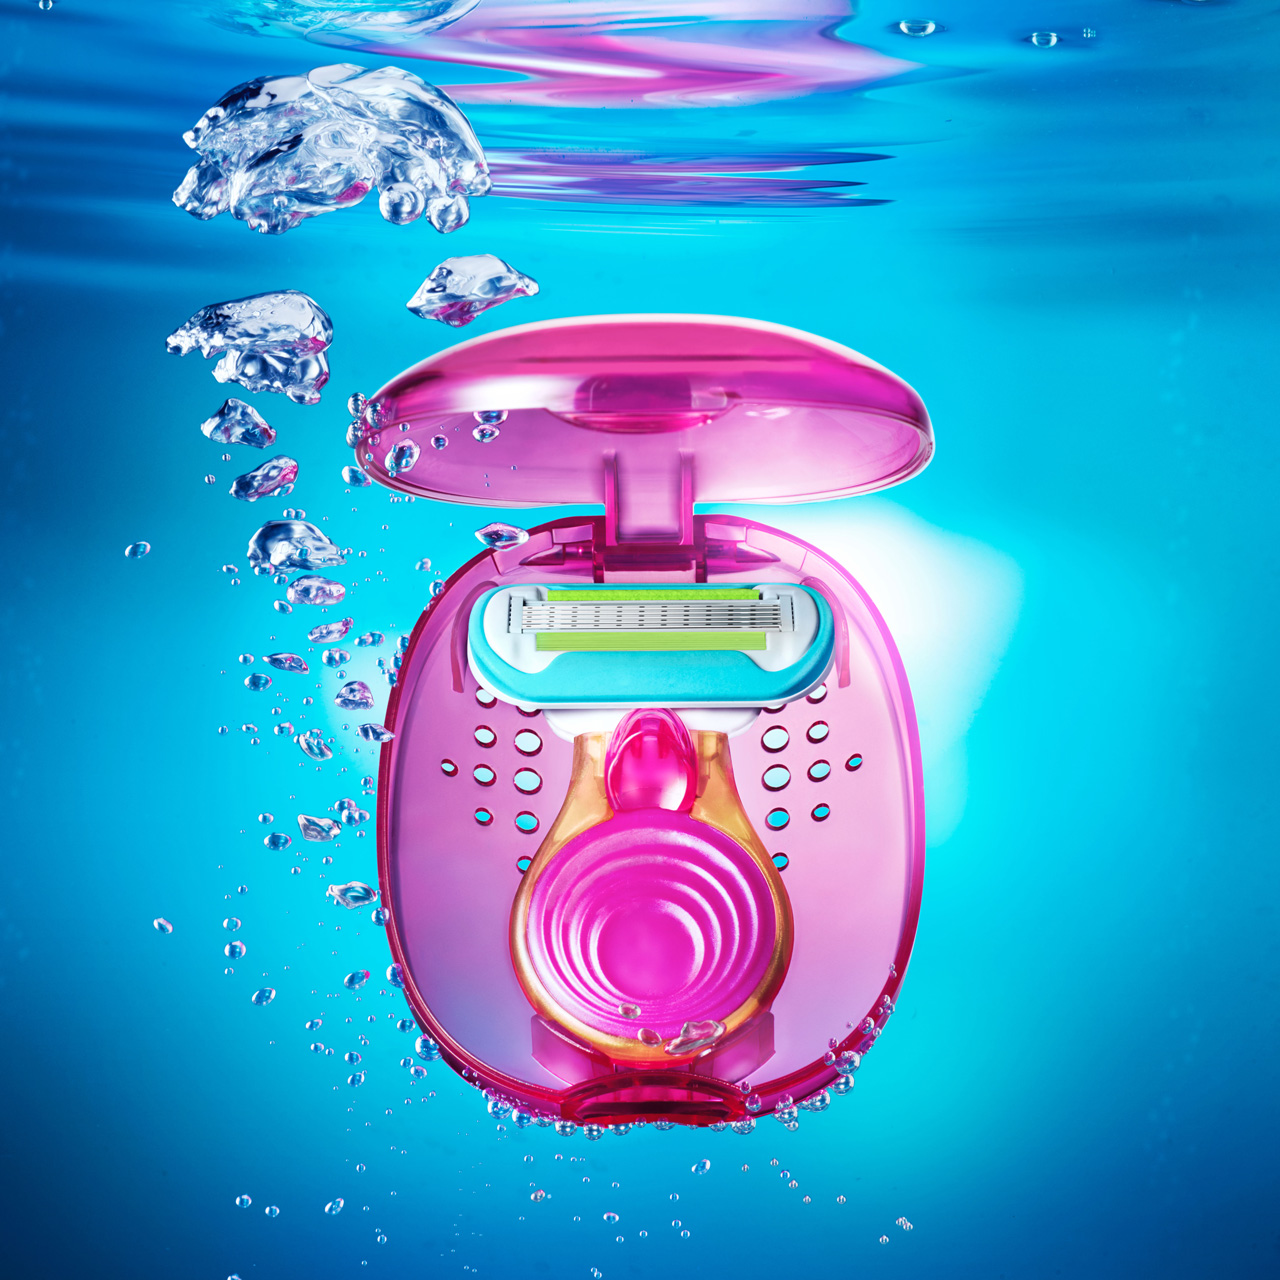 Small pink shaver under water